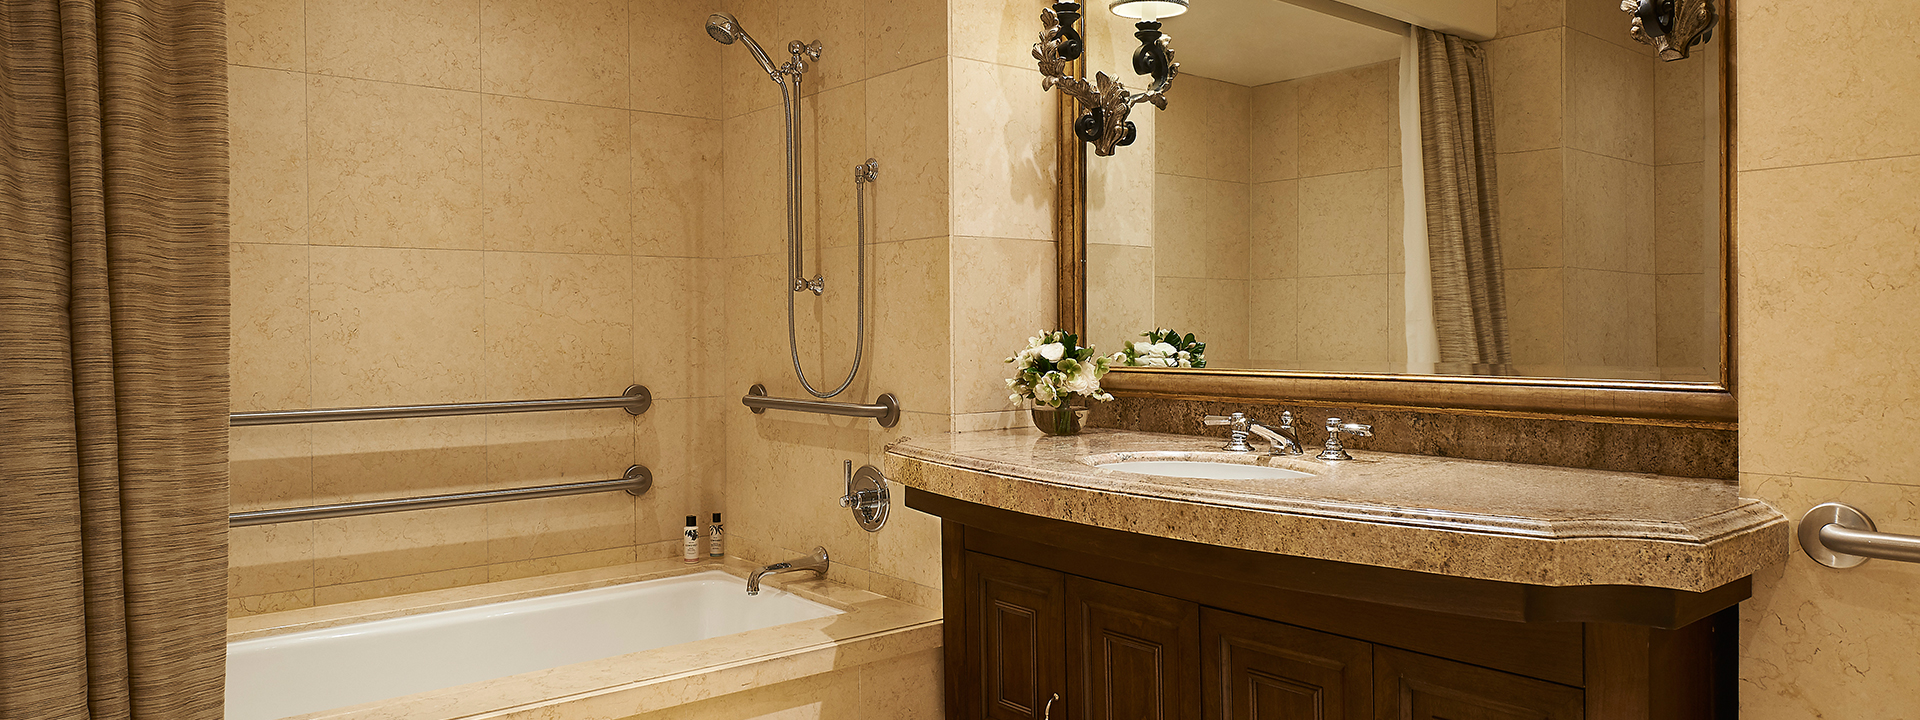 Accessible ornate bathroom